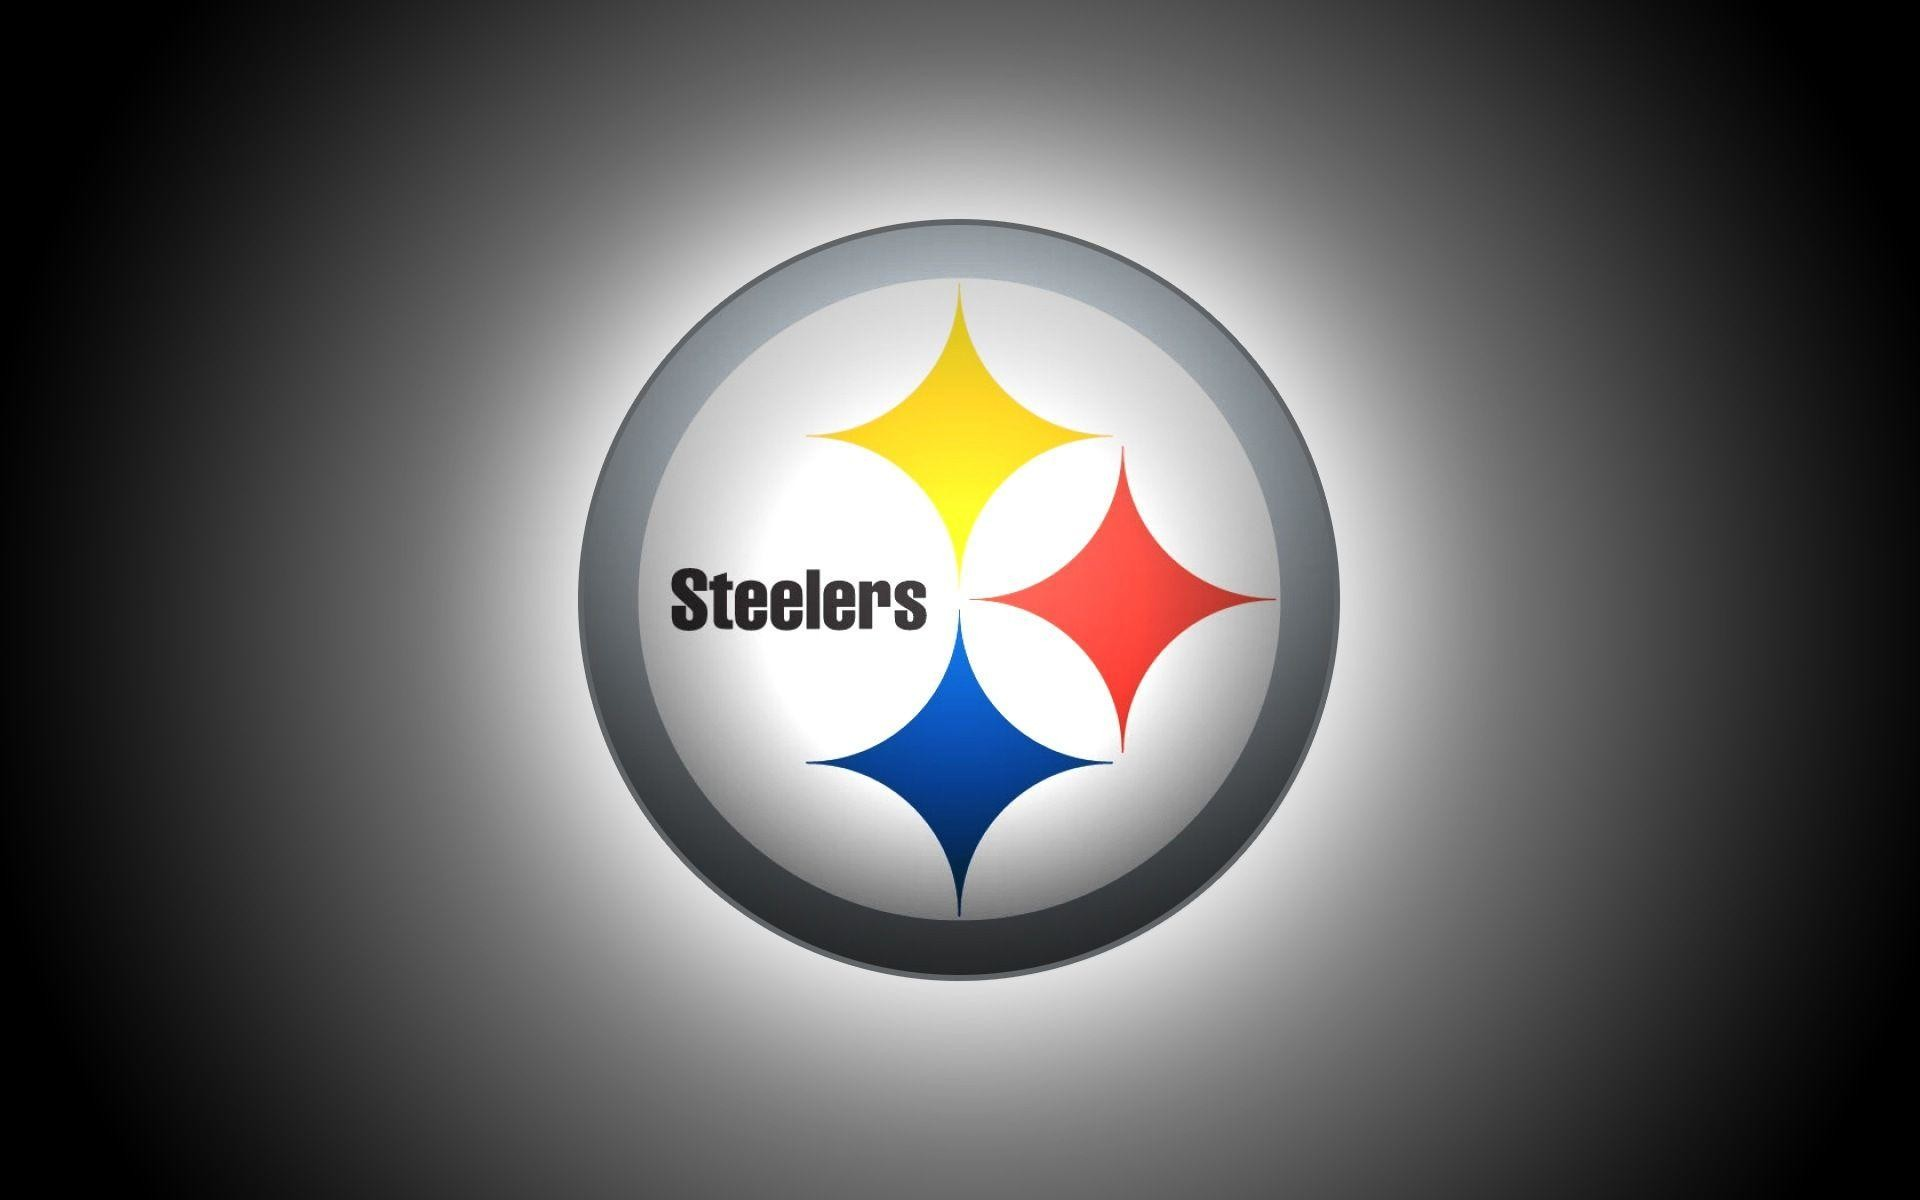 Steeler Wallpaper For Phone 65 Images